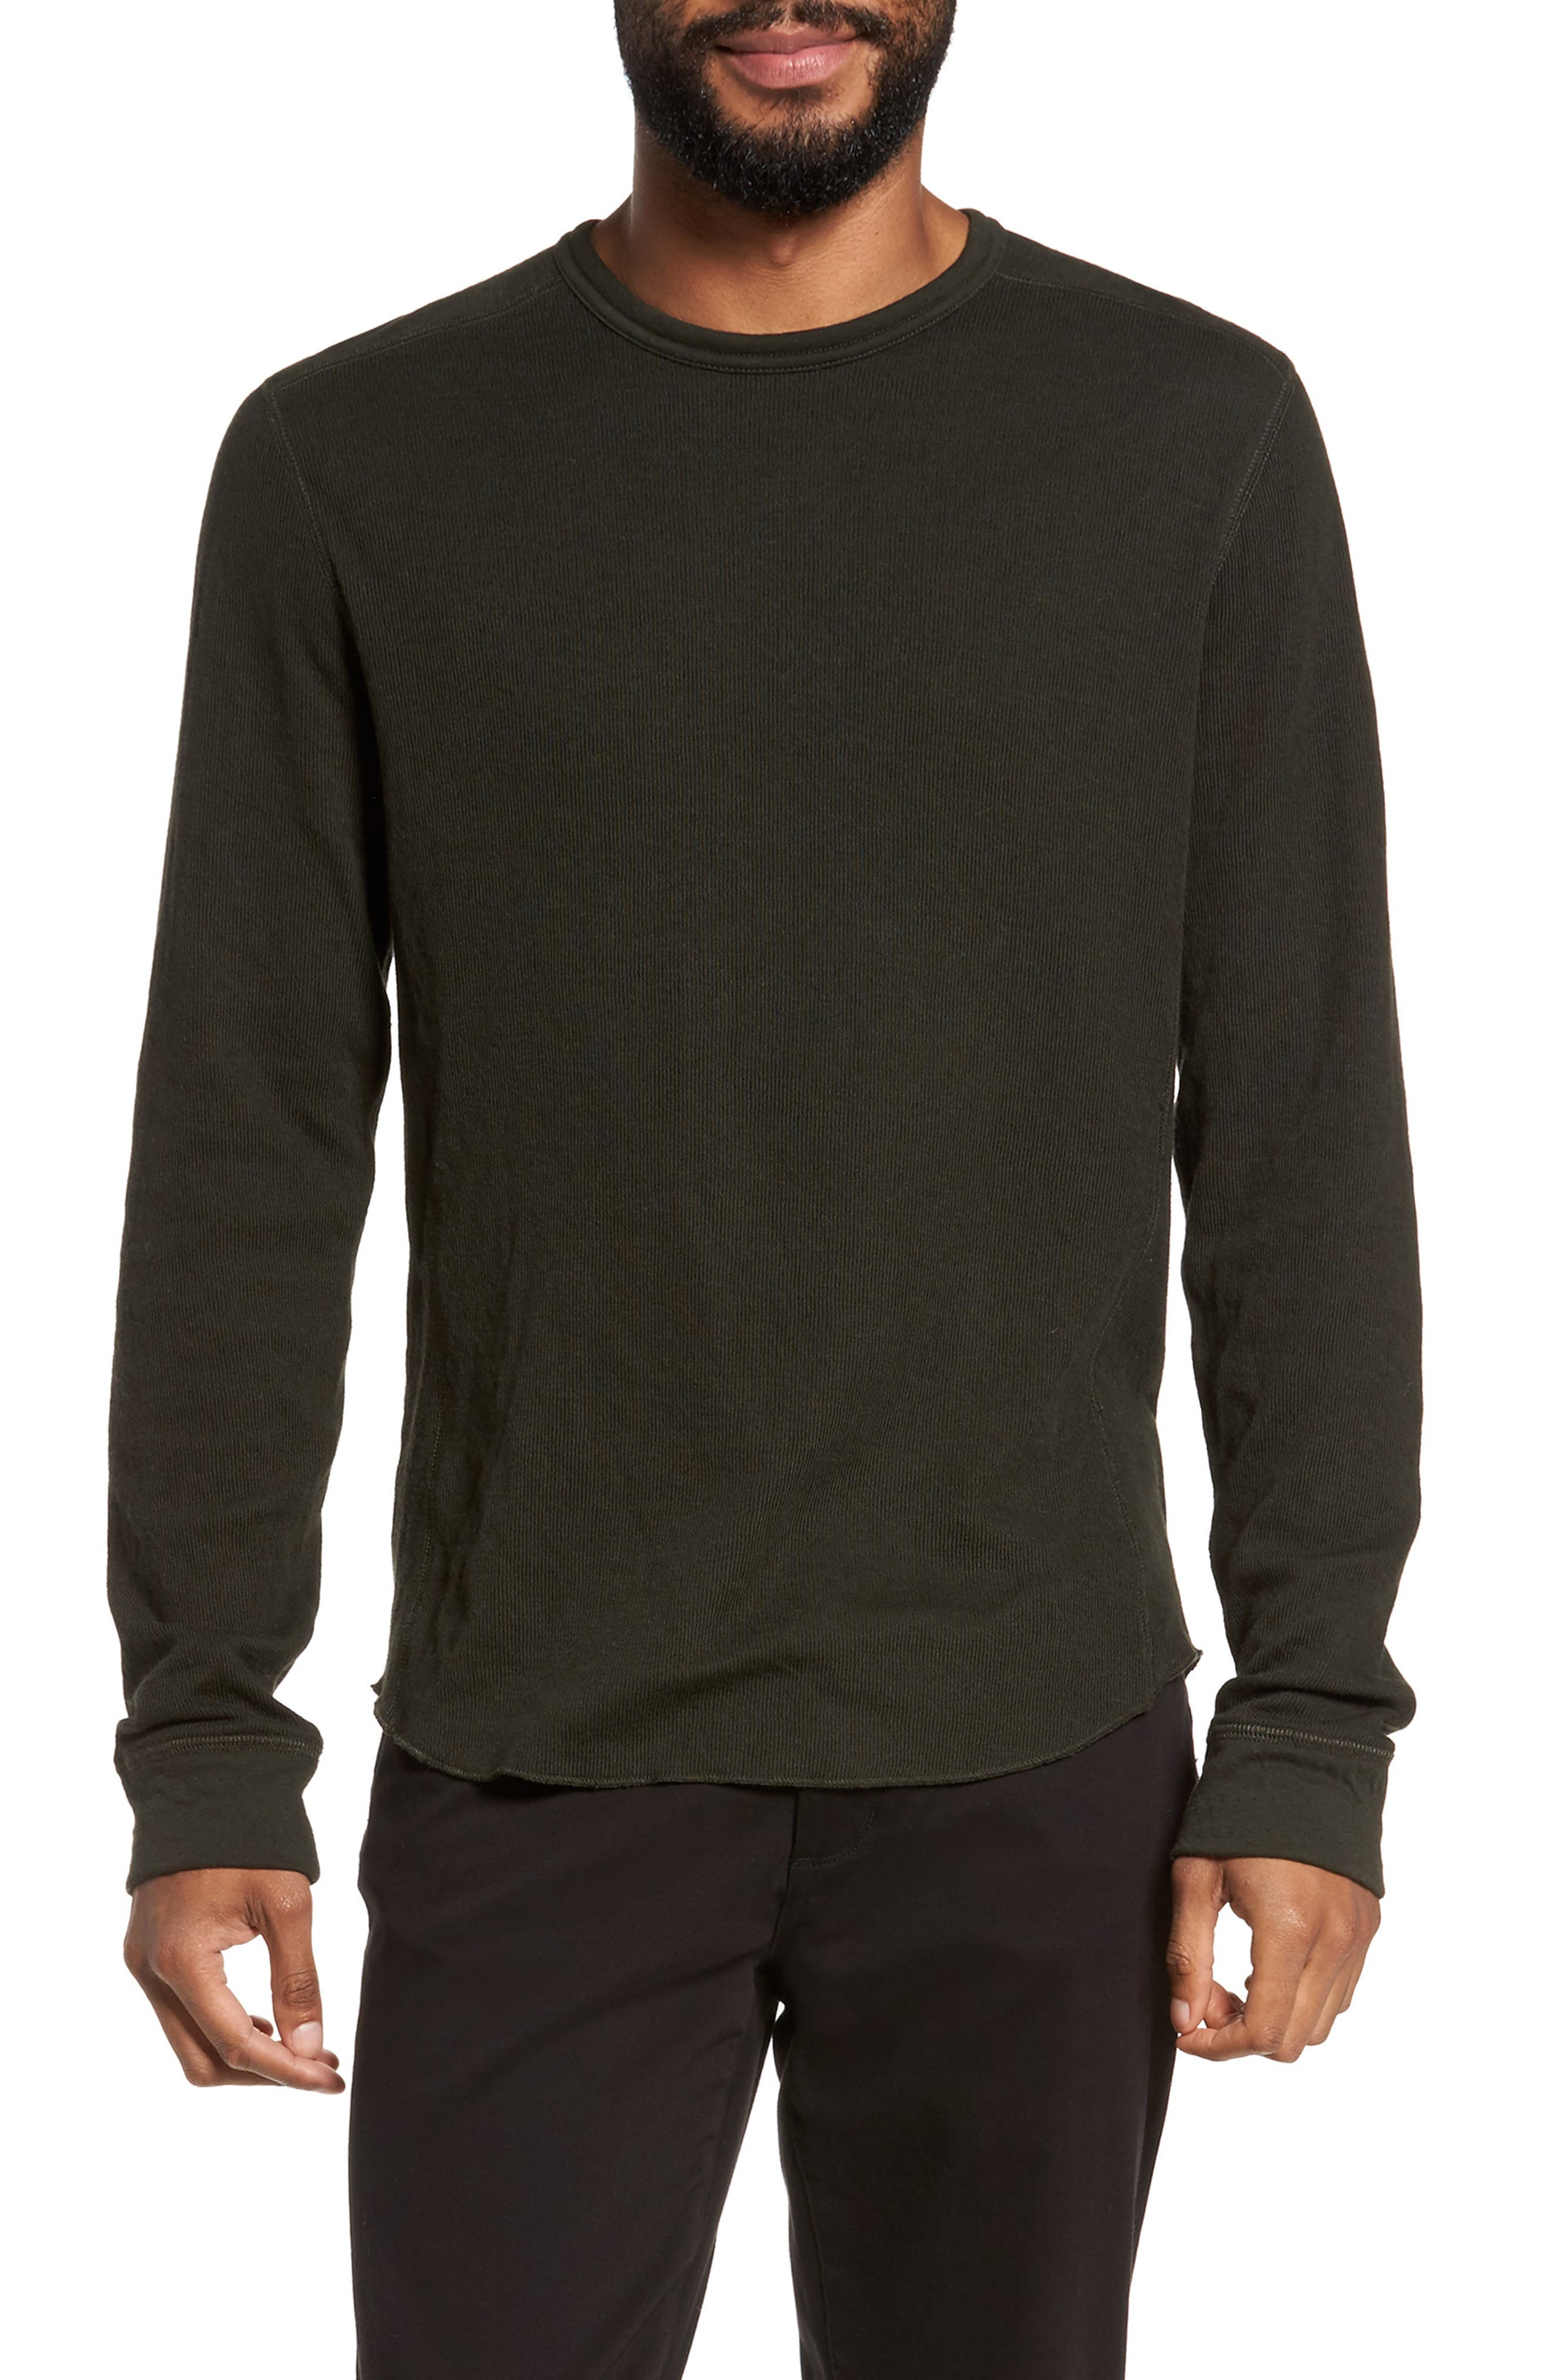 Alternate Image 1 Selected - Vince Double Knit Long Sleeve T-Shirt